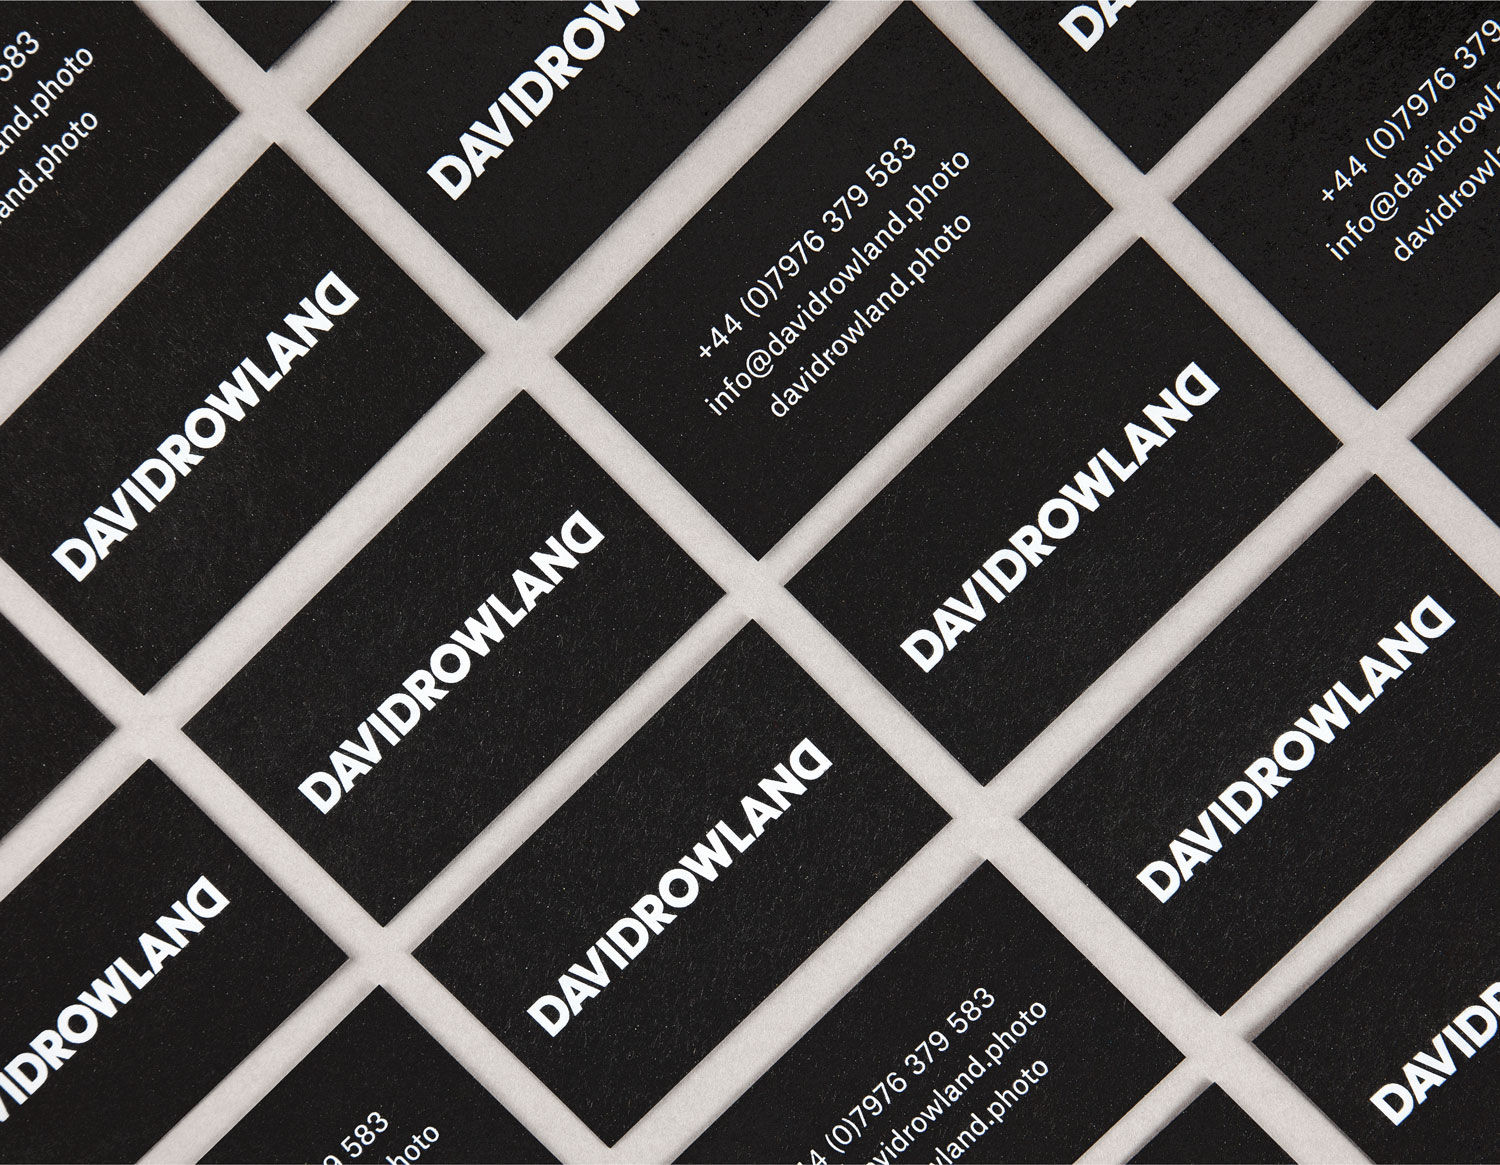 Logotype and black business cards with white ink detail by London-based graphic design studio ico Design for photographer David Rowland